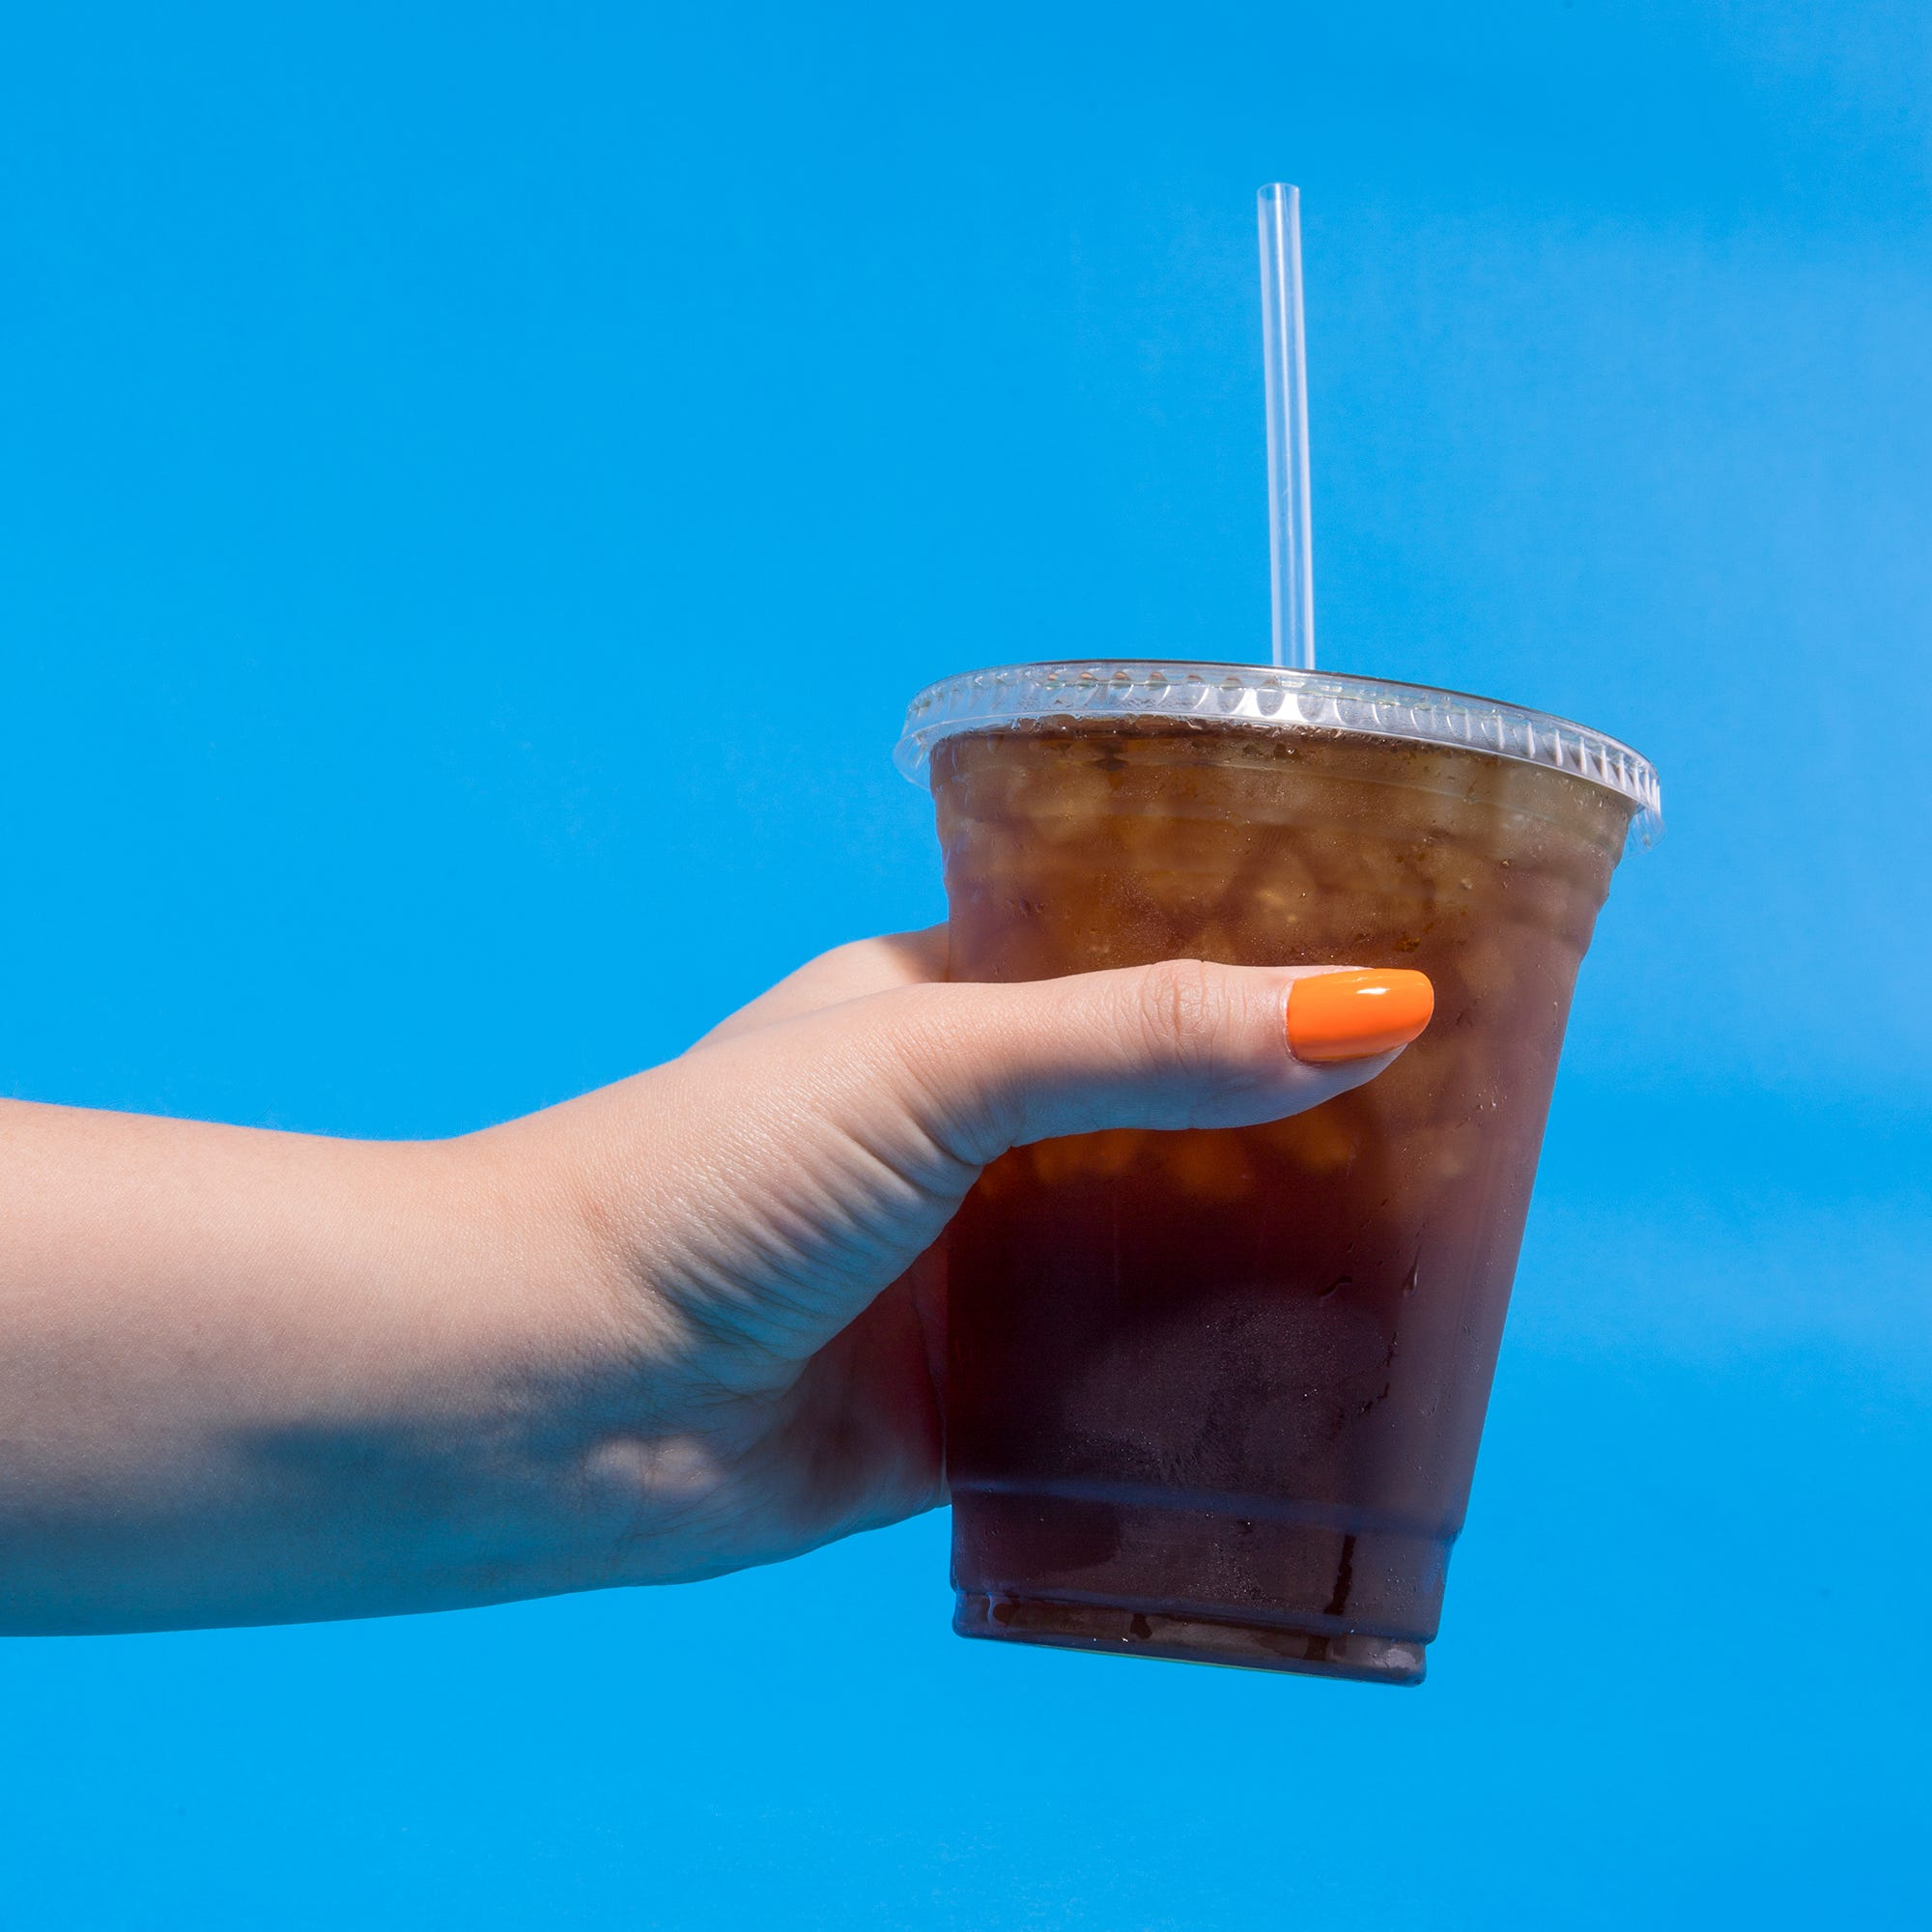 Cold Brew Subscriptions Could Save You Money On Coffee